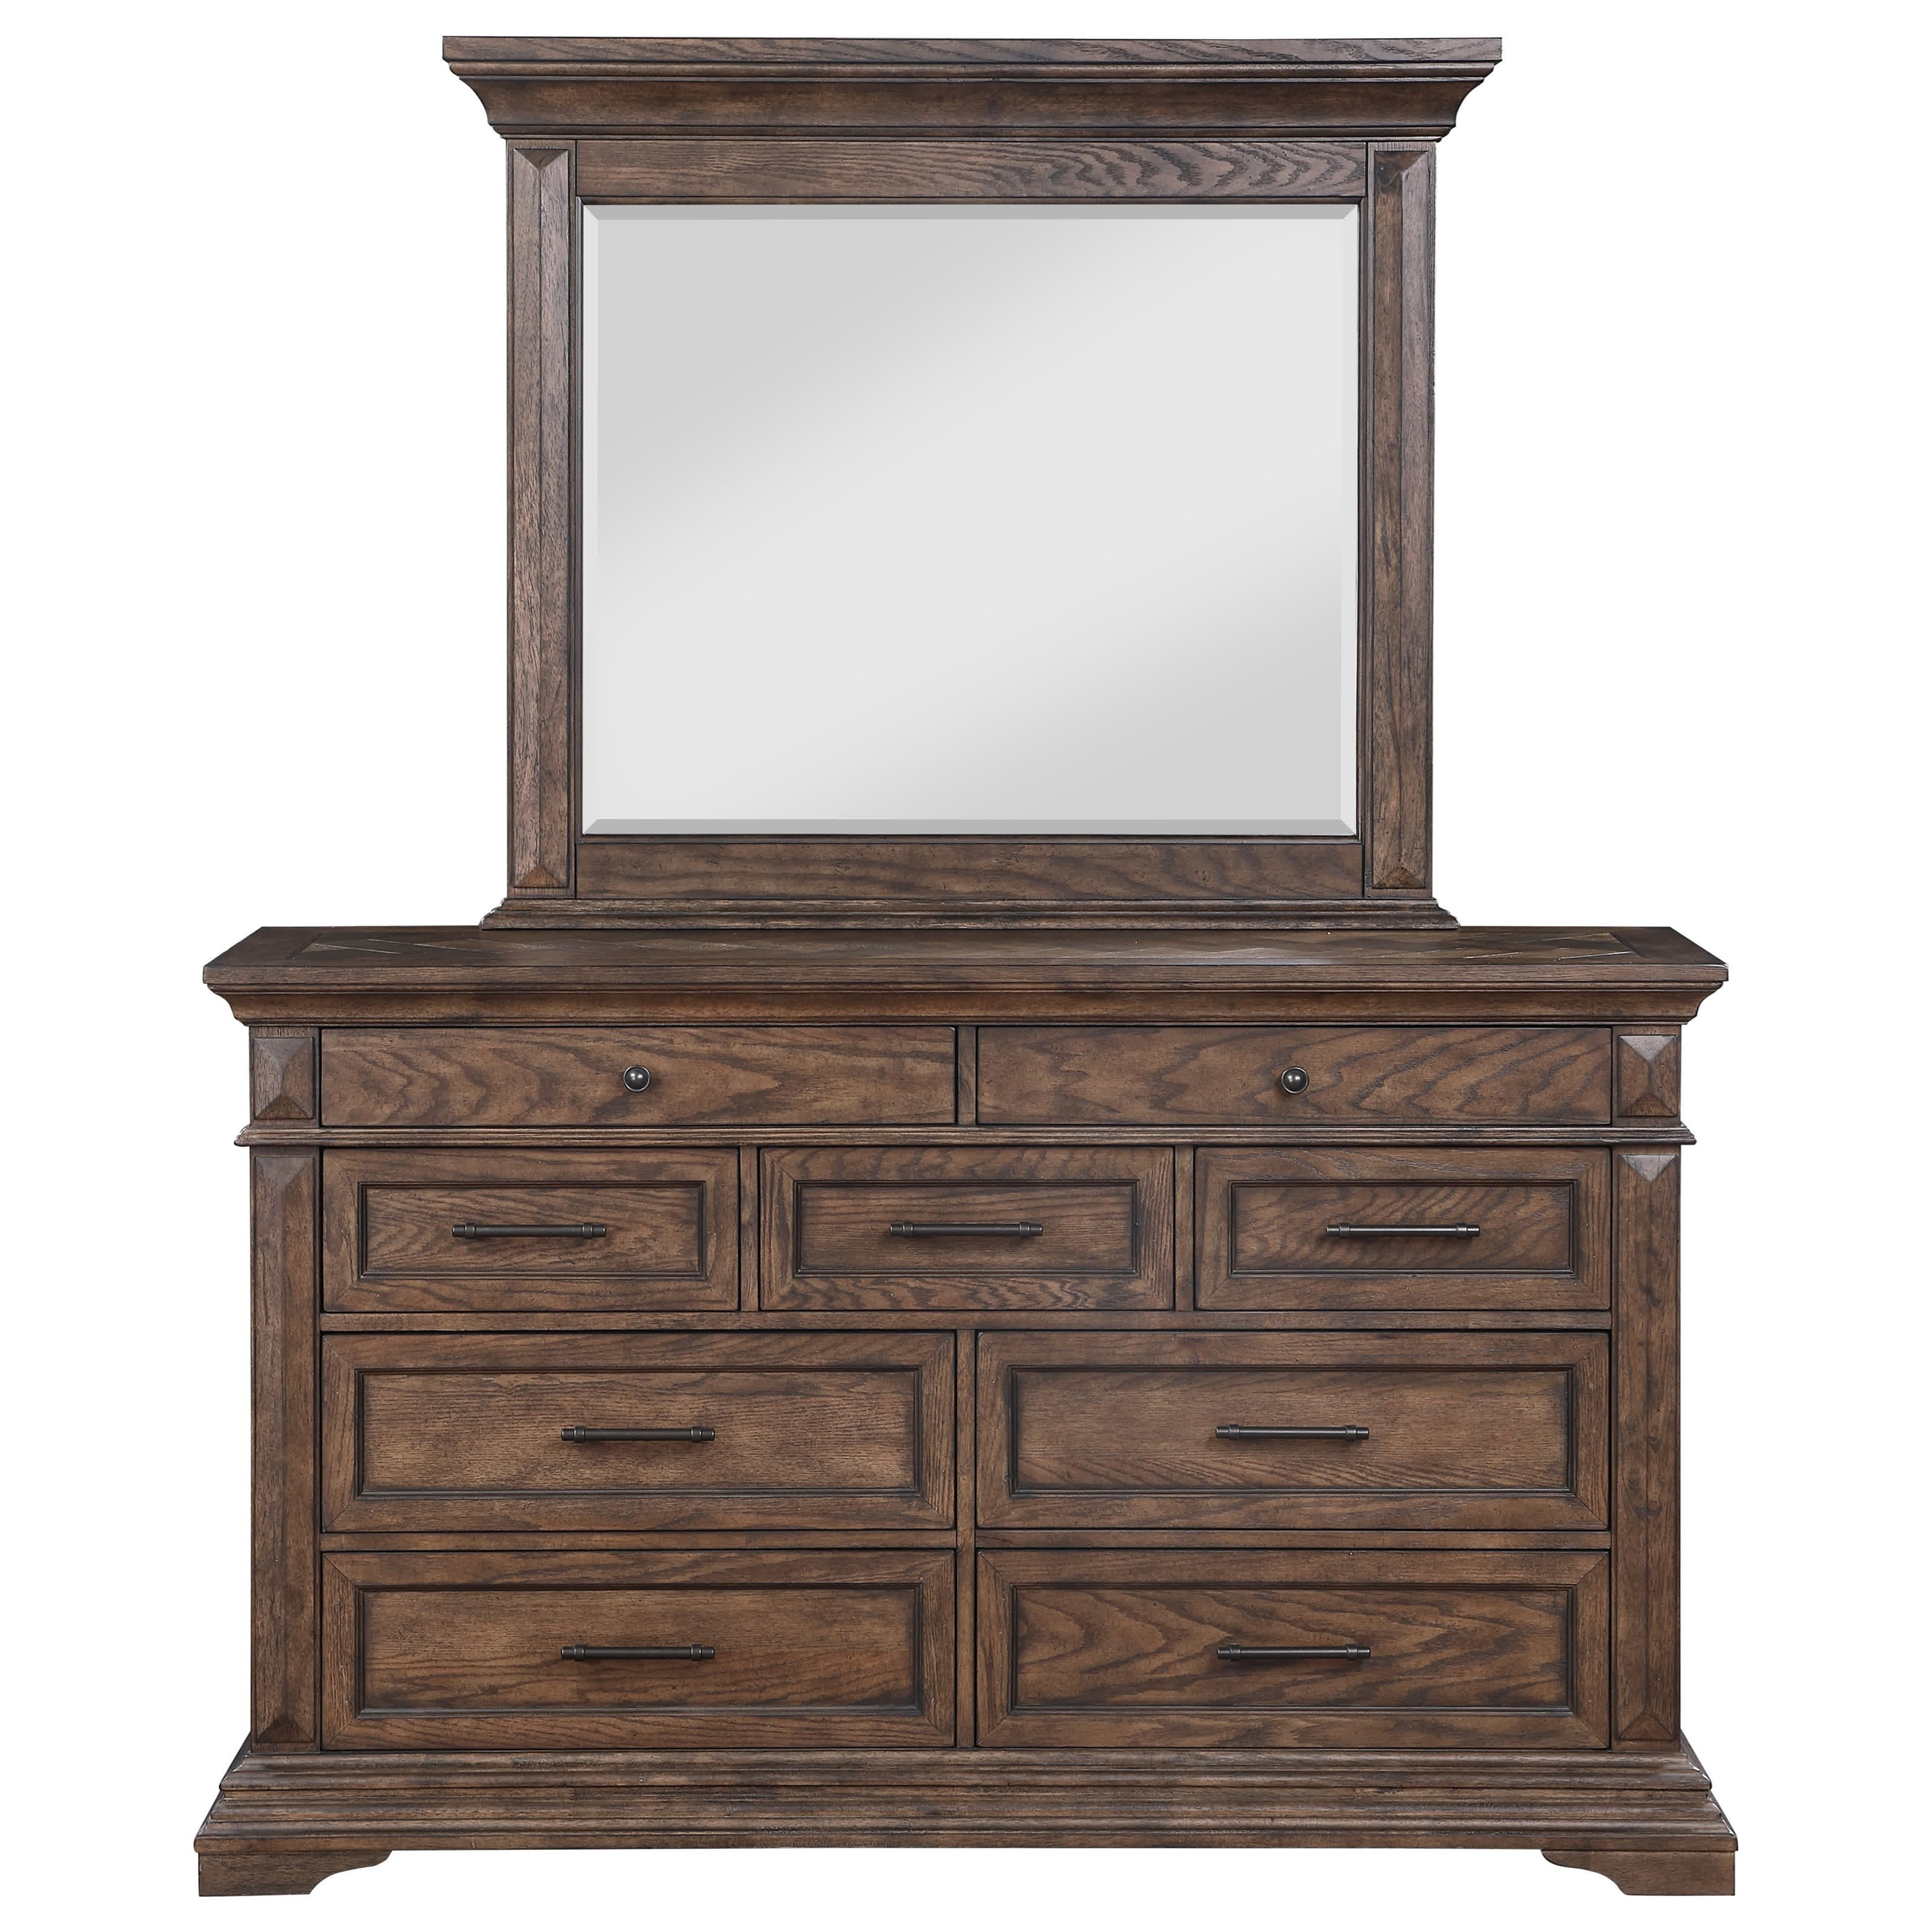 Mar Vista Dresser and Mirror Set by New Classic at Wilcox Furniture